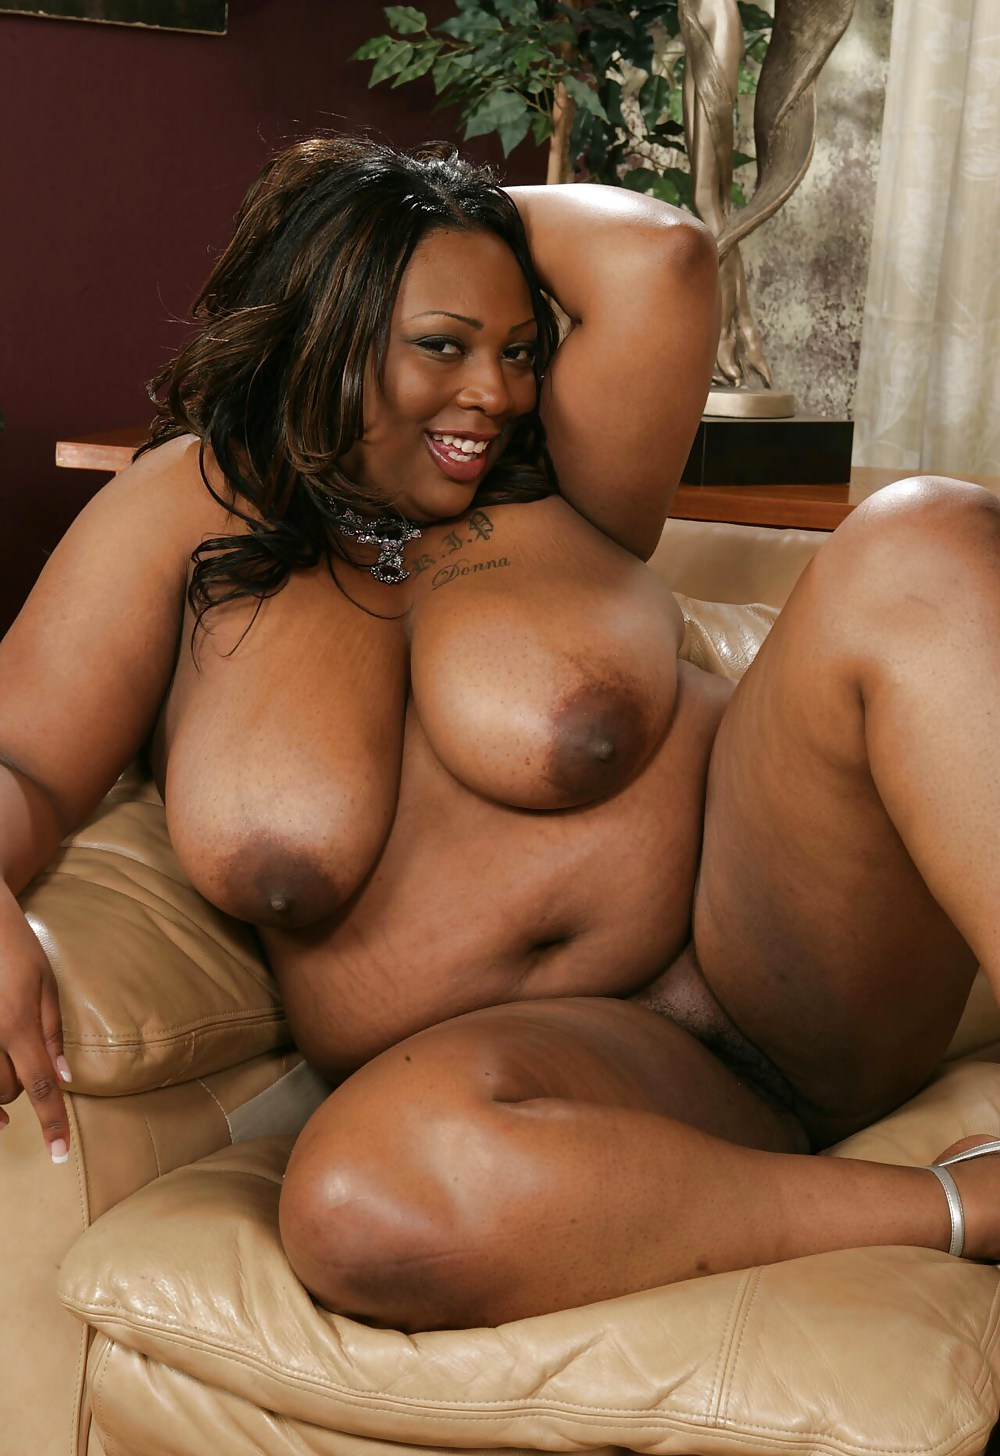 free-ebony-plumper-pussy-galleries